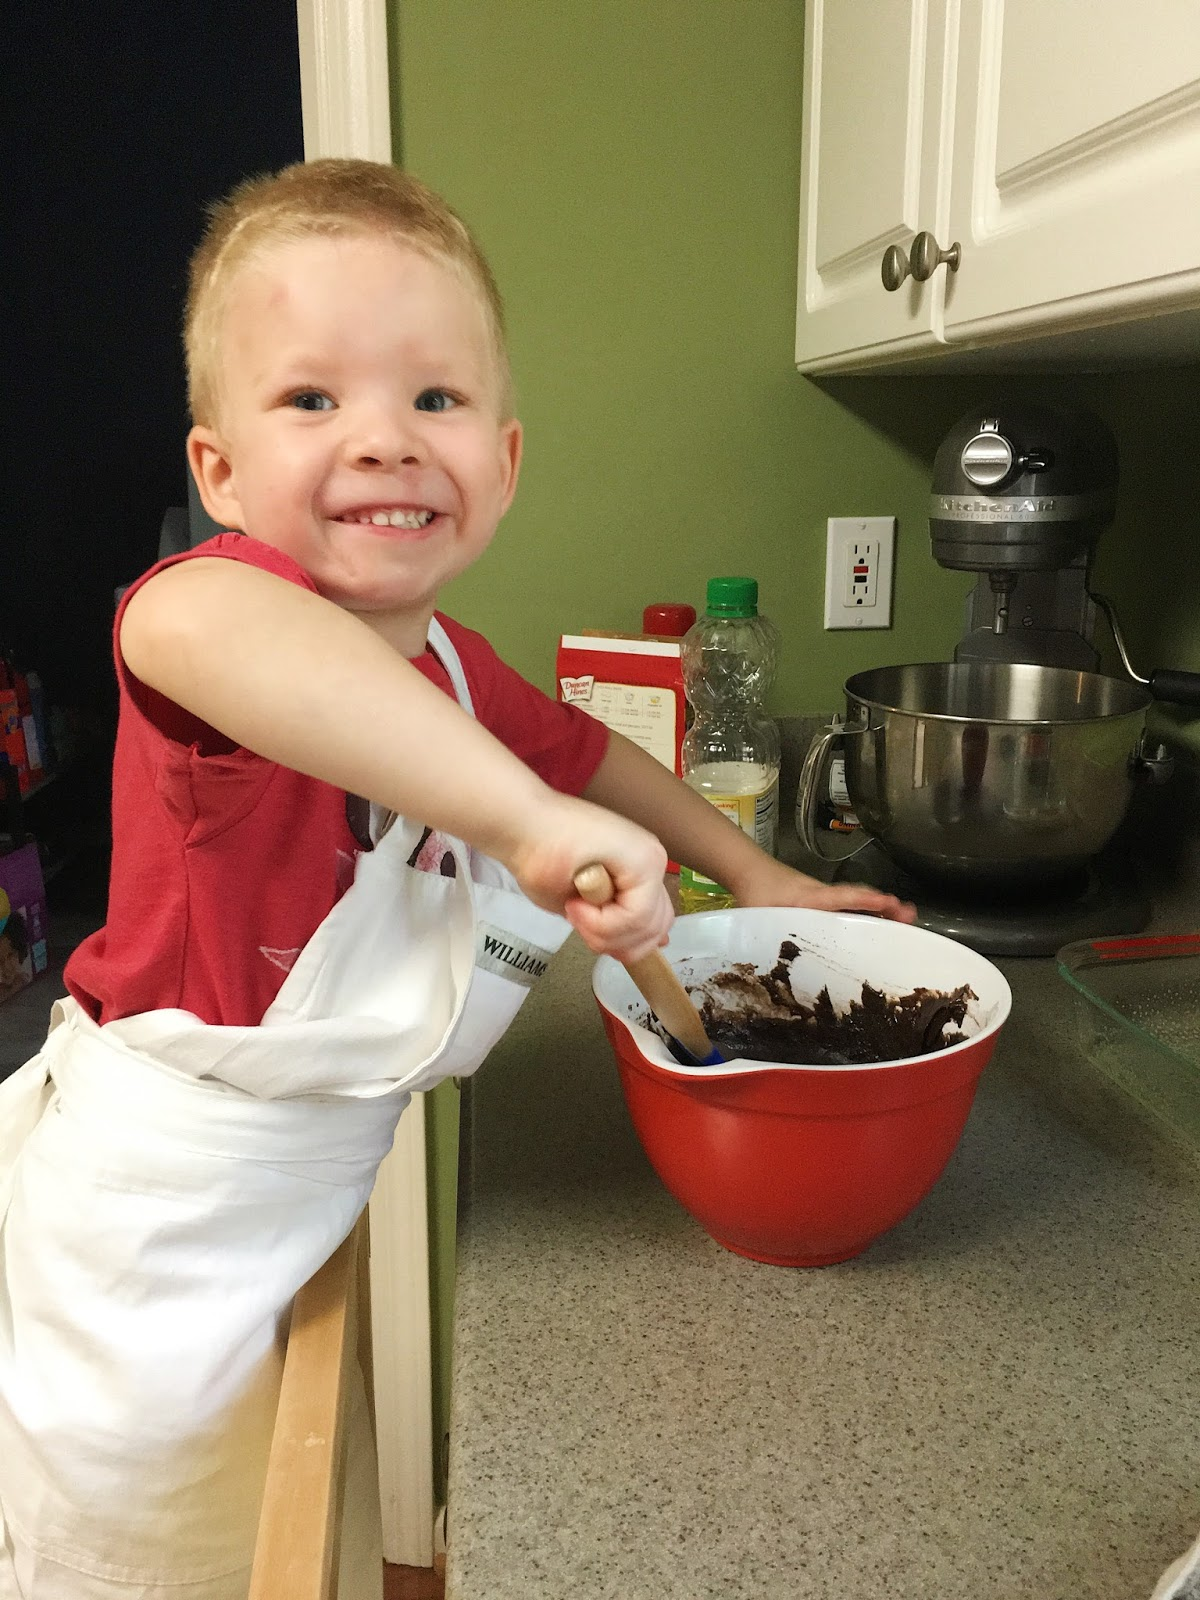 Everyday Thoughts: A Parent's Guide to Cooking with Kids